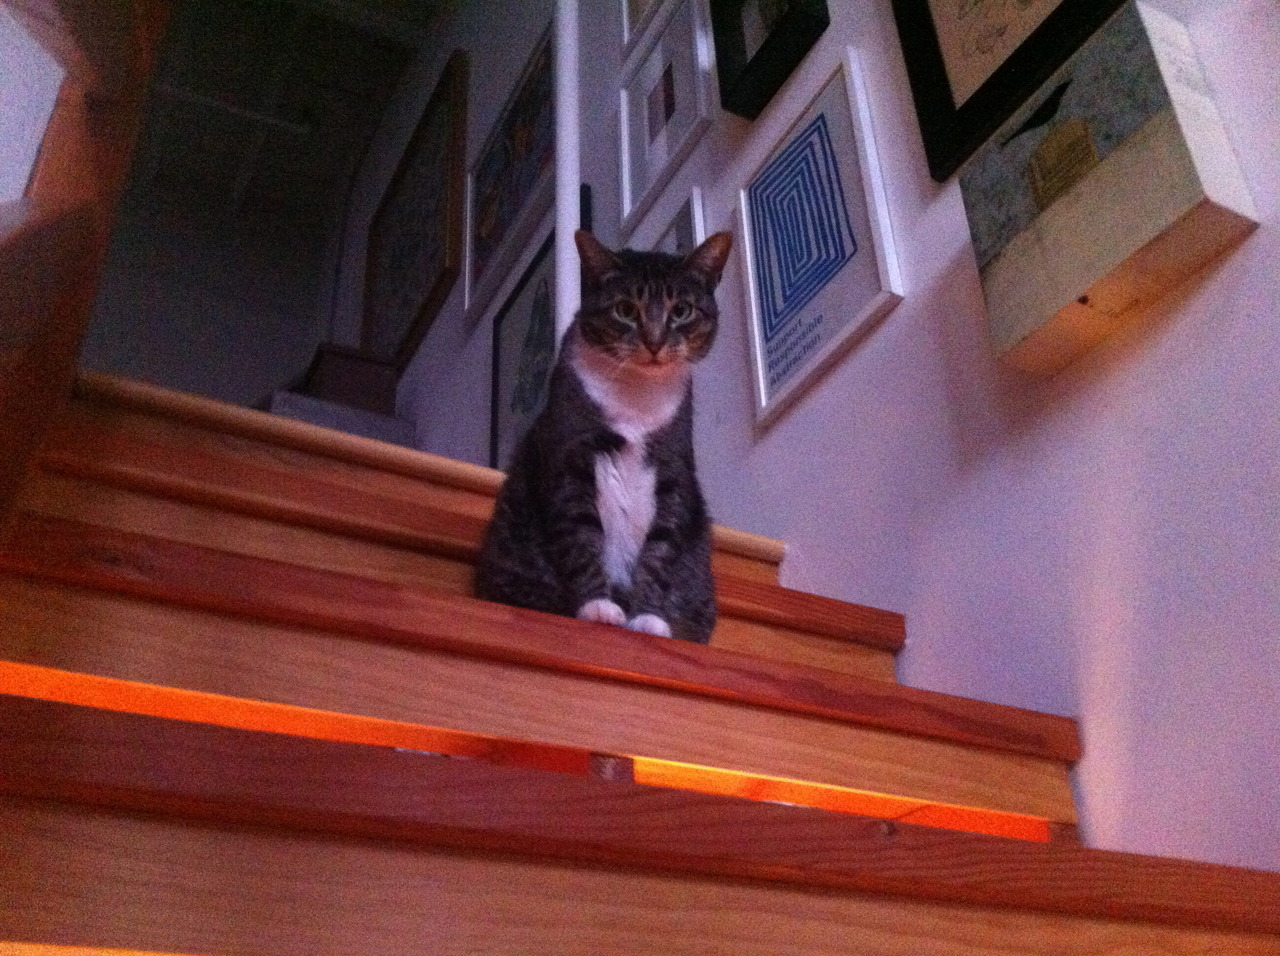 The judgement on the stairs.